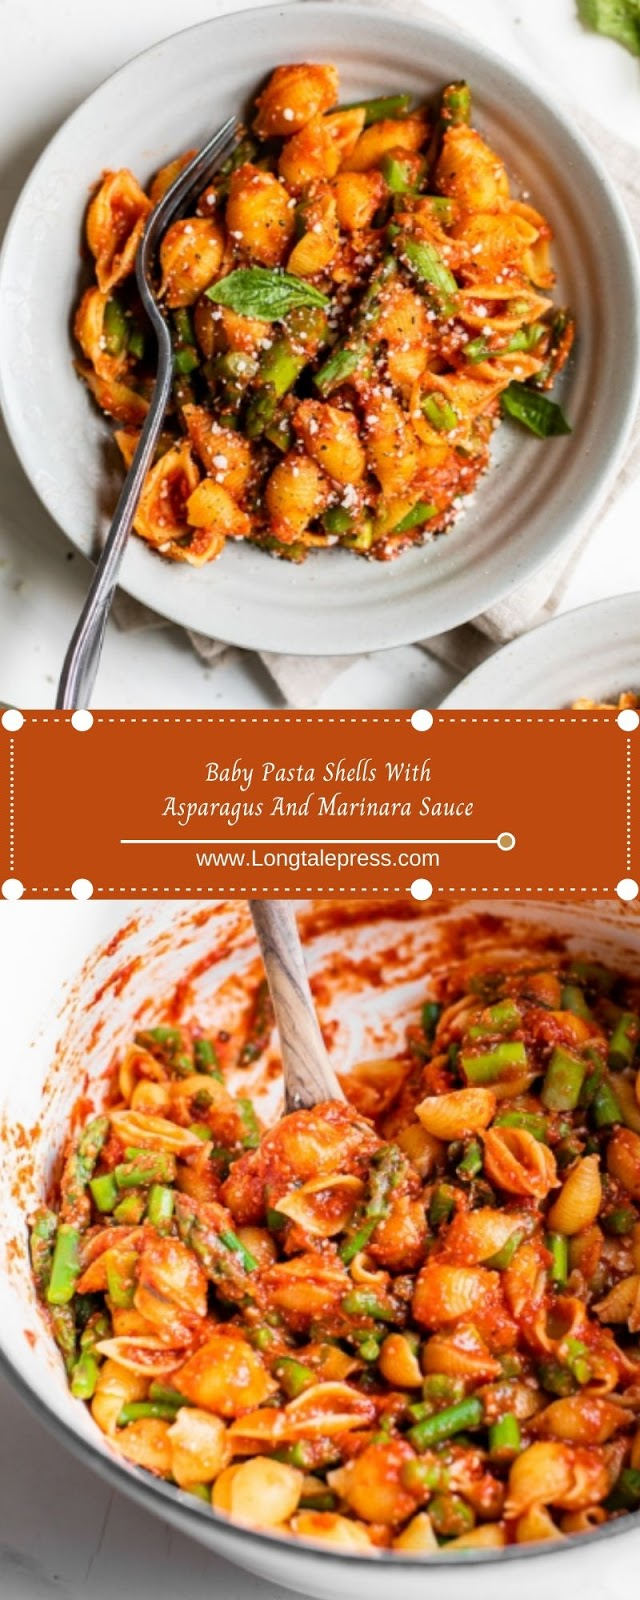 Baby Pasta Shells With Asparagus And Marinara Sauce